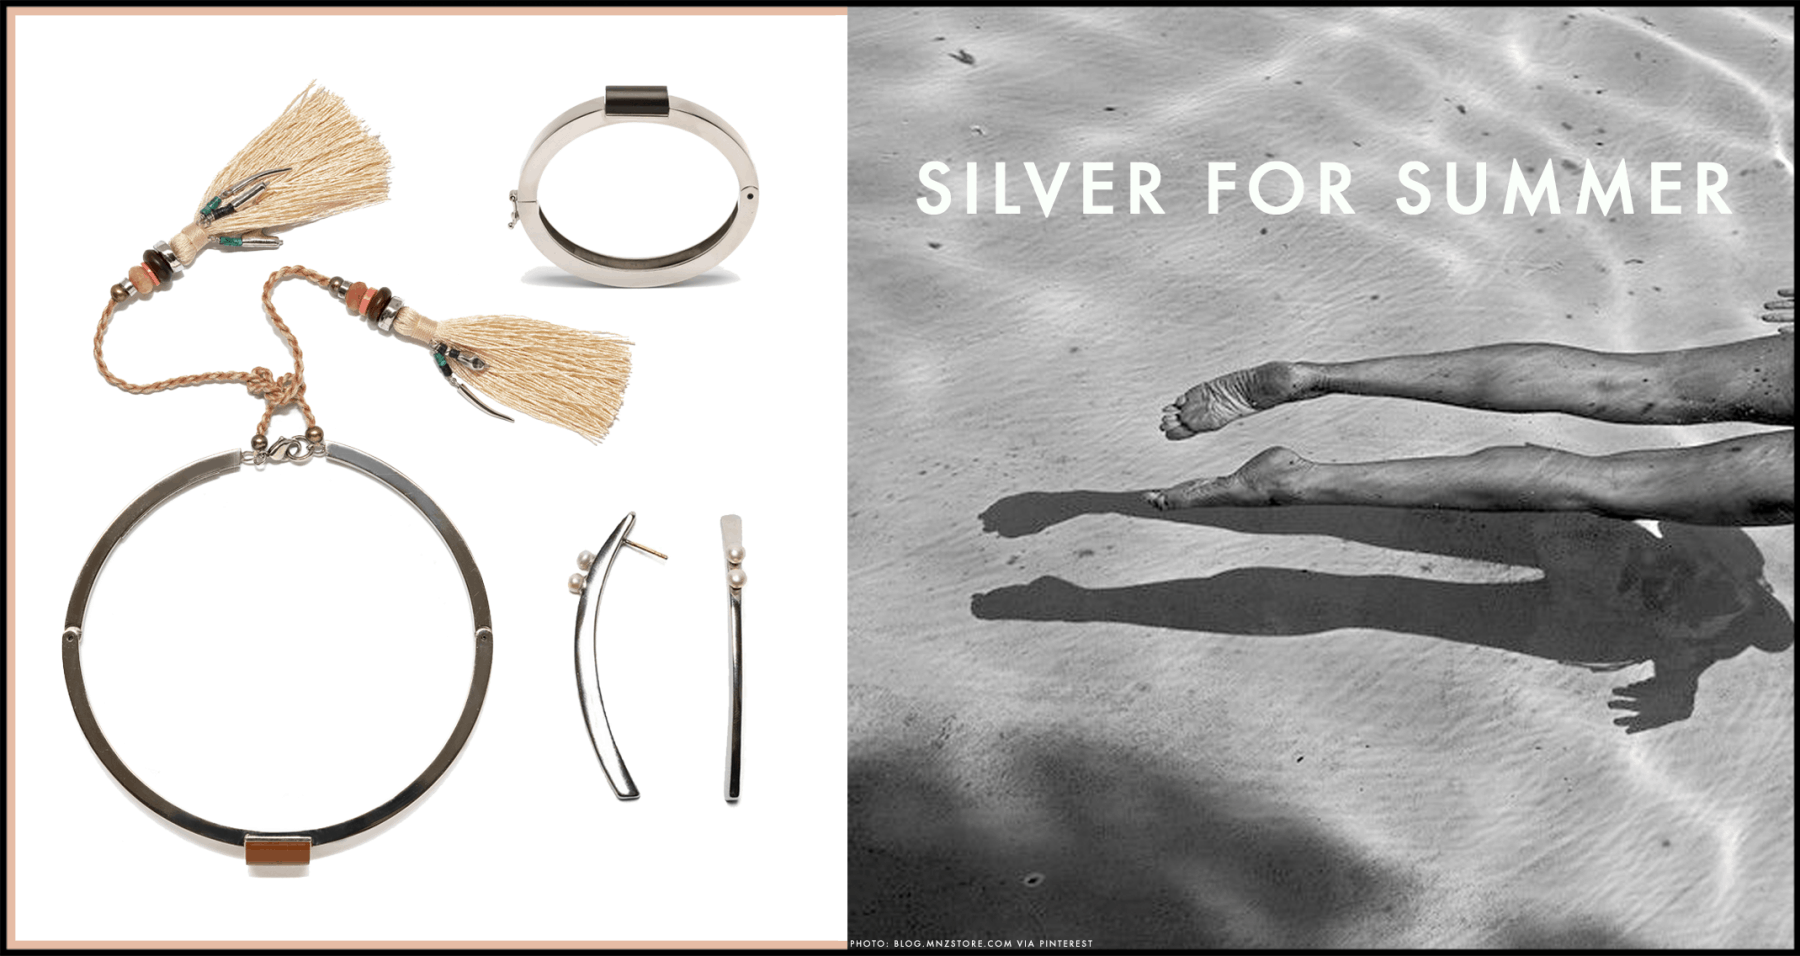 2-Silver For Summer